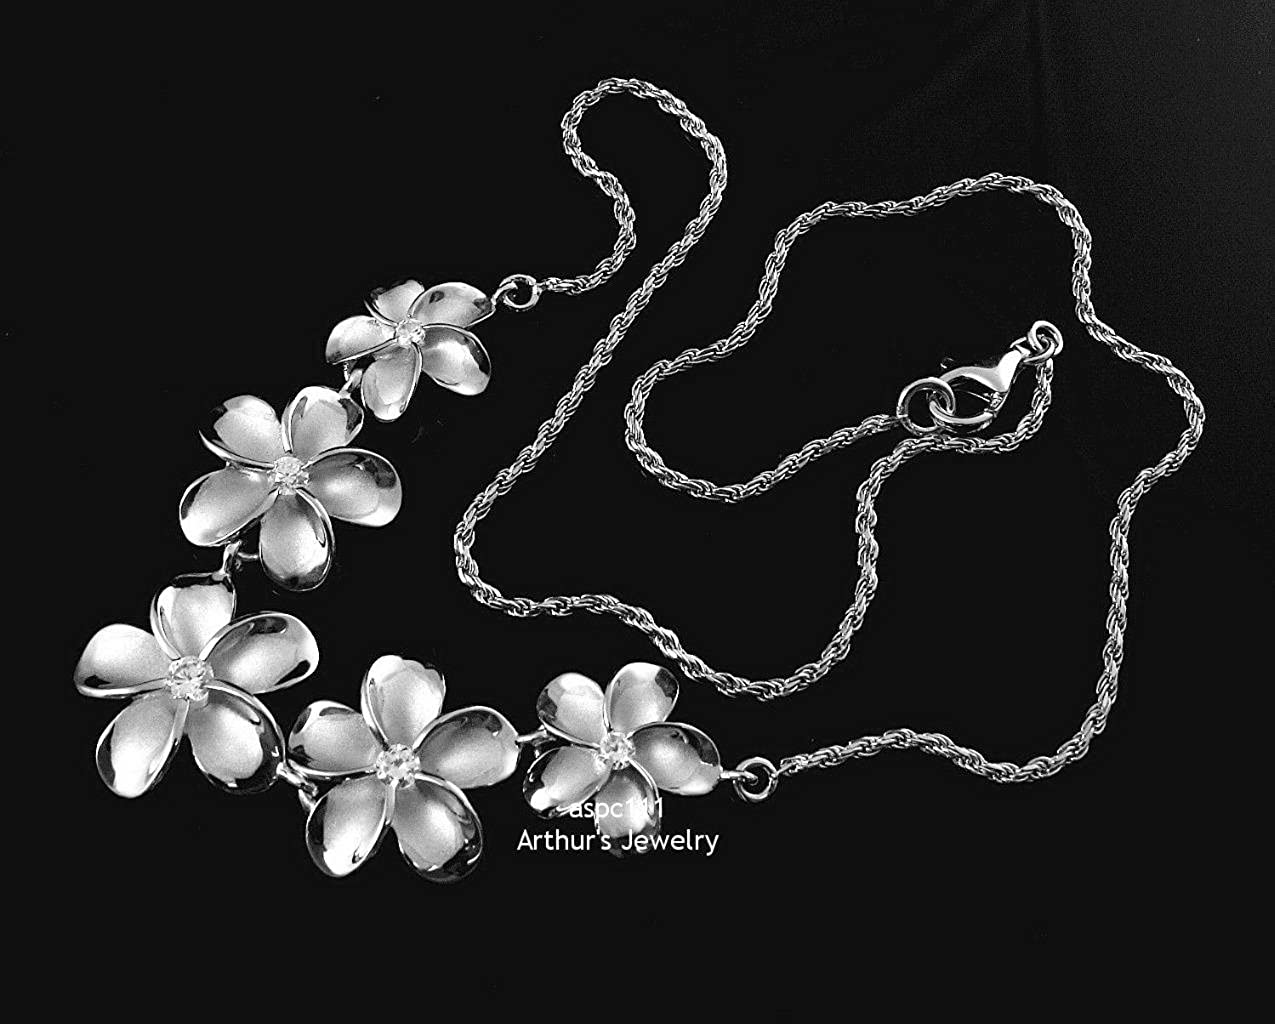 925 sterling silver rhodium plated 5 Hawaiian plumeria flower large necklace 17